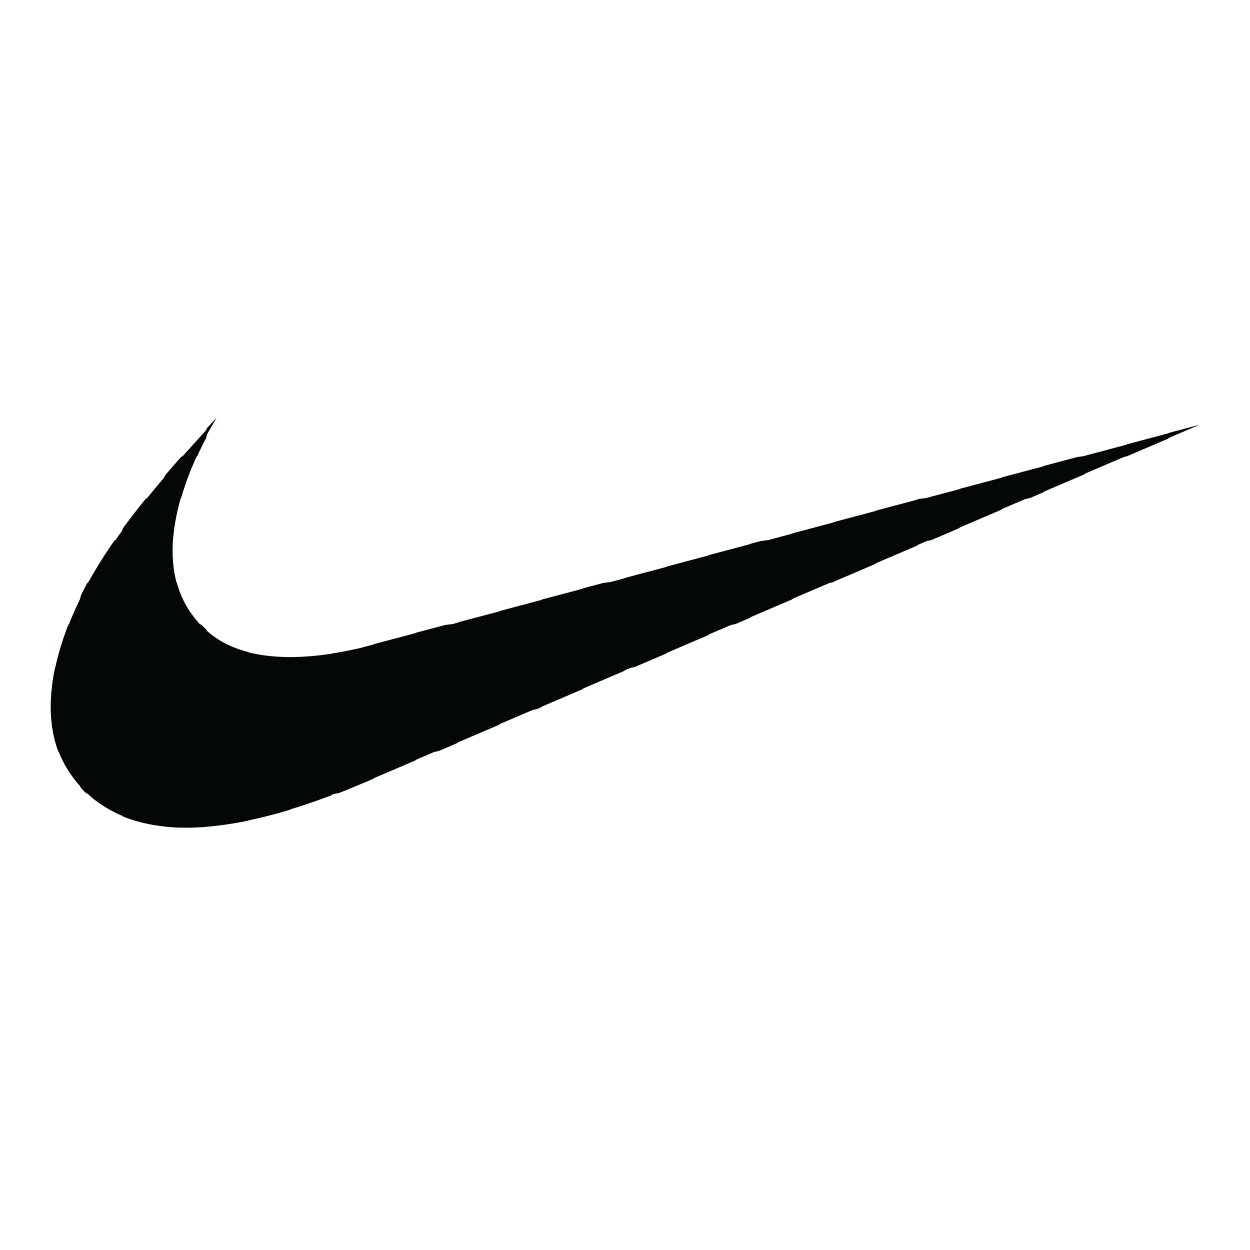 client-logos-01.png